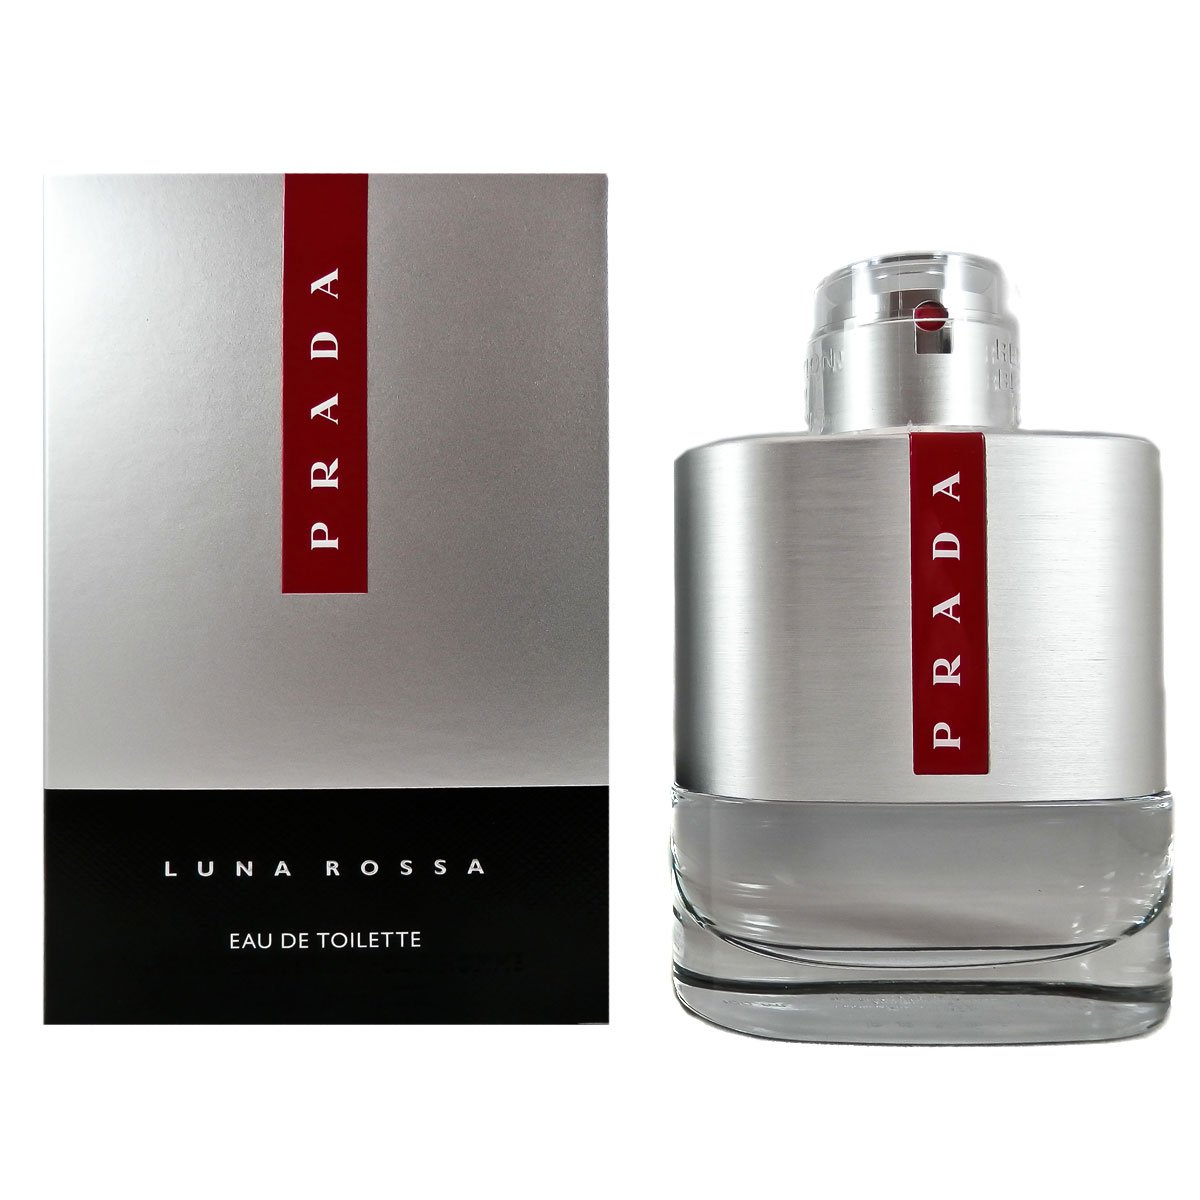 Prada Luna Rossa Eau de Toilette Spray for Men, 3.4 Ounce (Packaging may vary)